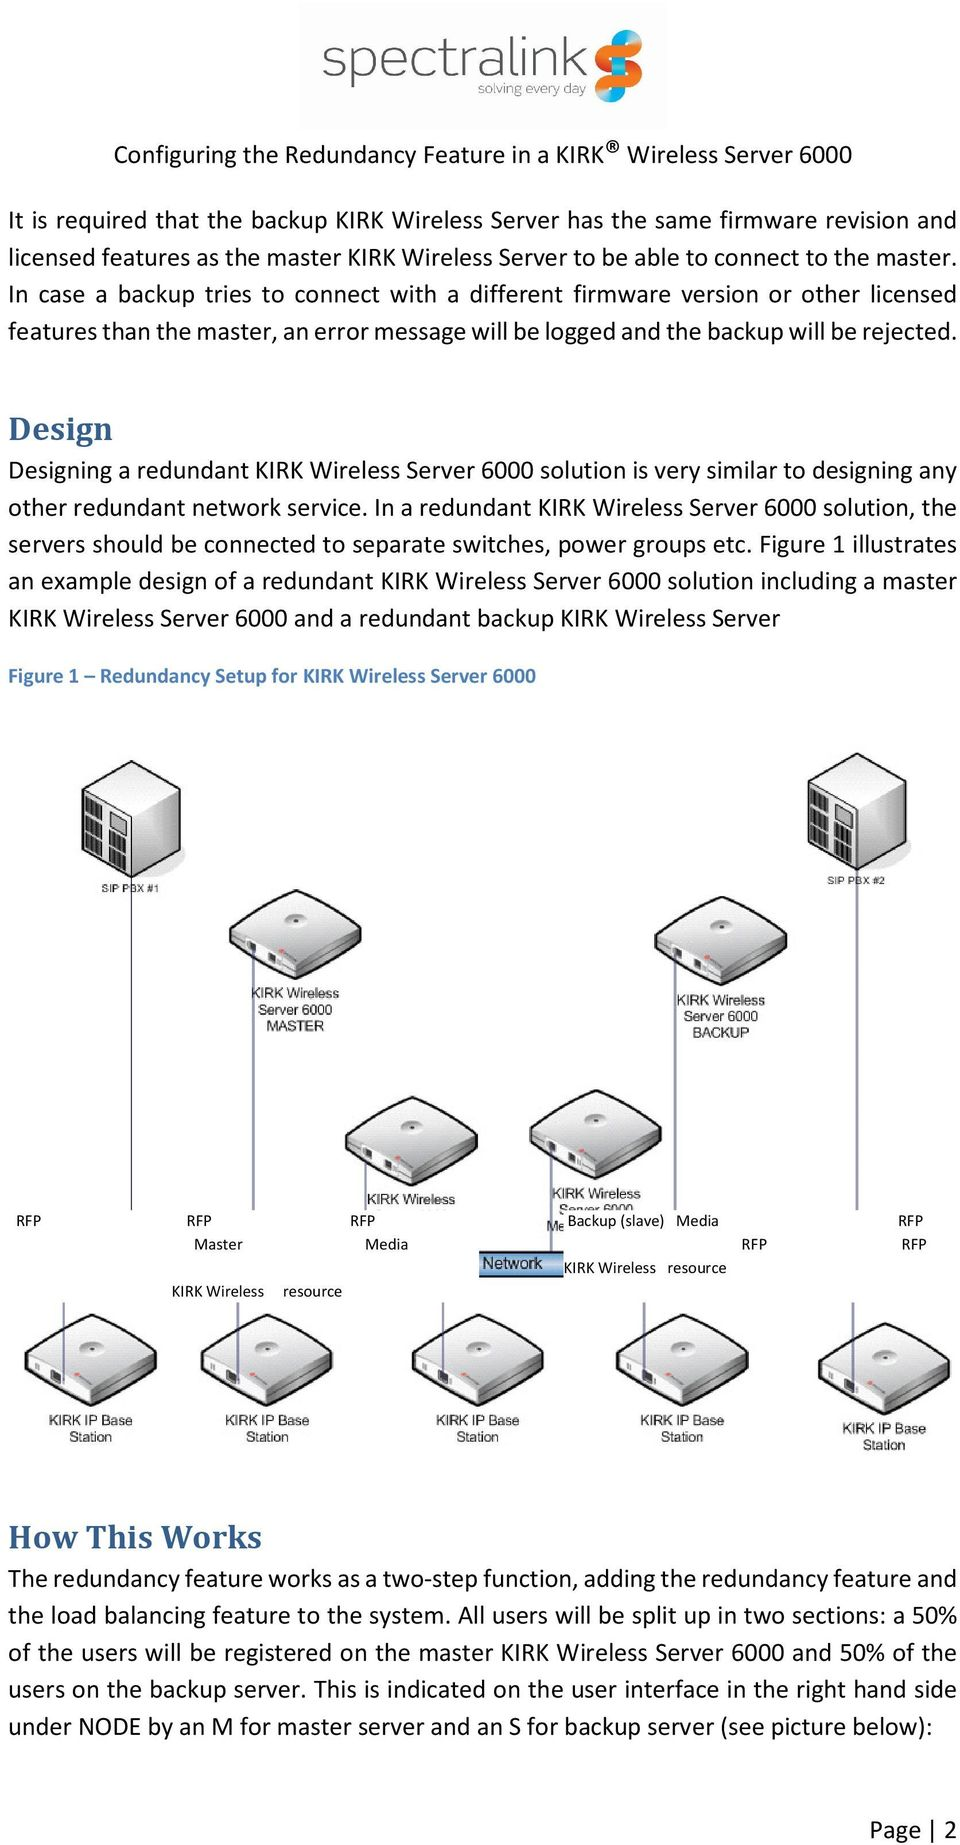 Design Designing a redundant KIRK Wireless Server 6000 solution is very similar to designing any other redundant network service.